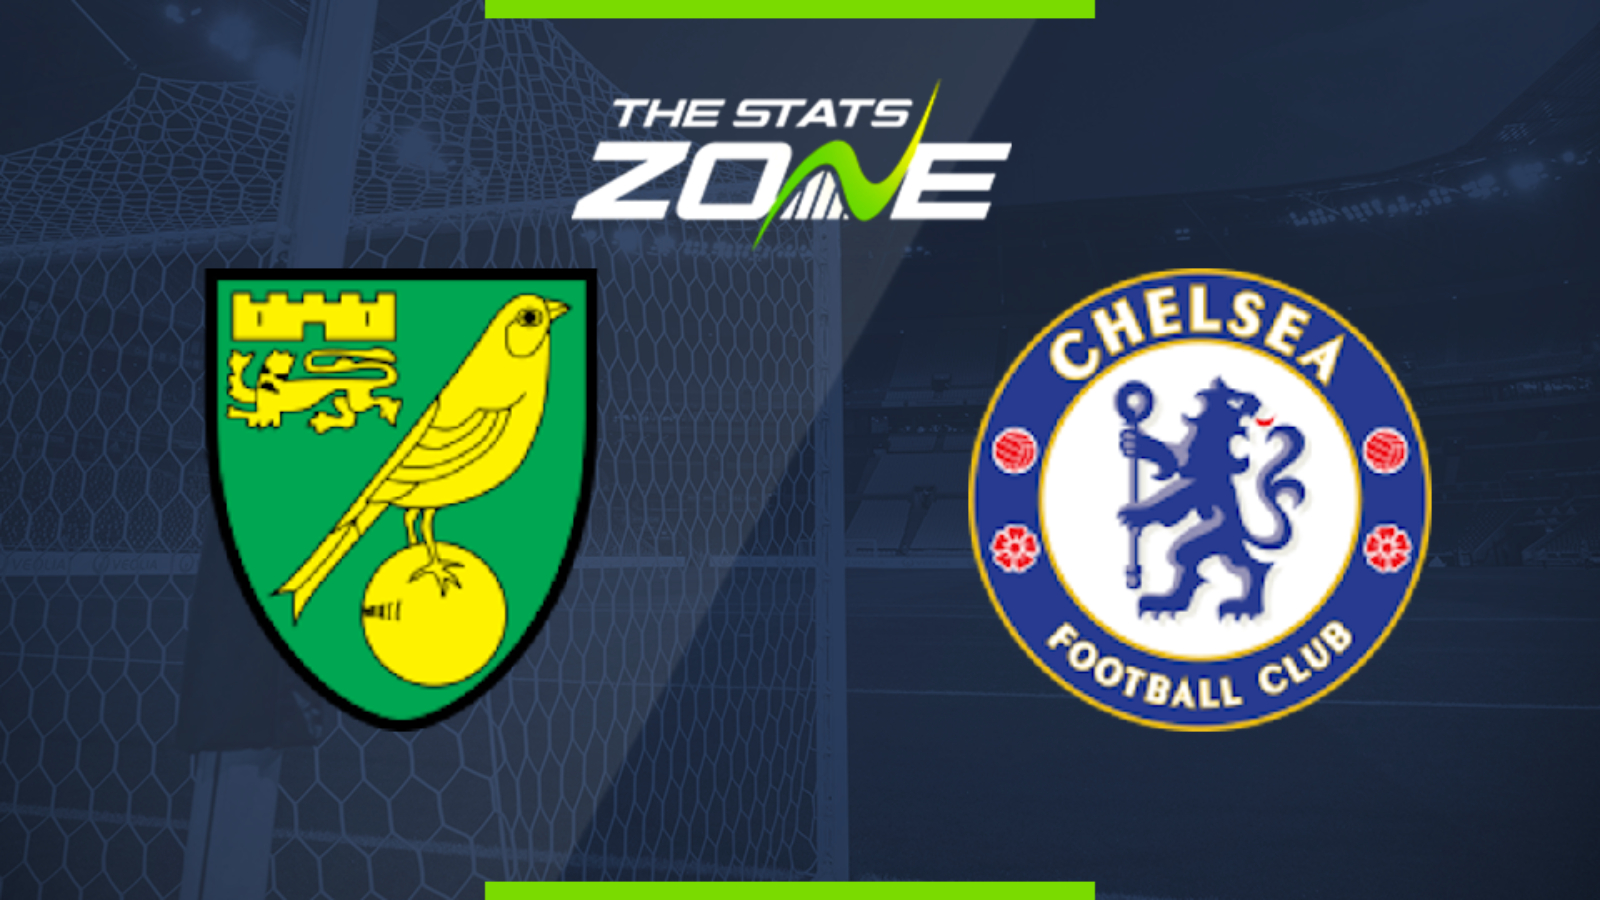 Norwich 2-3 Chelsea: Goals, highlights and reaction | The Fallout